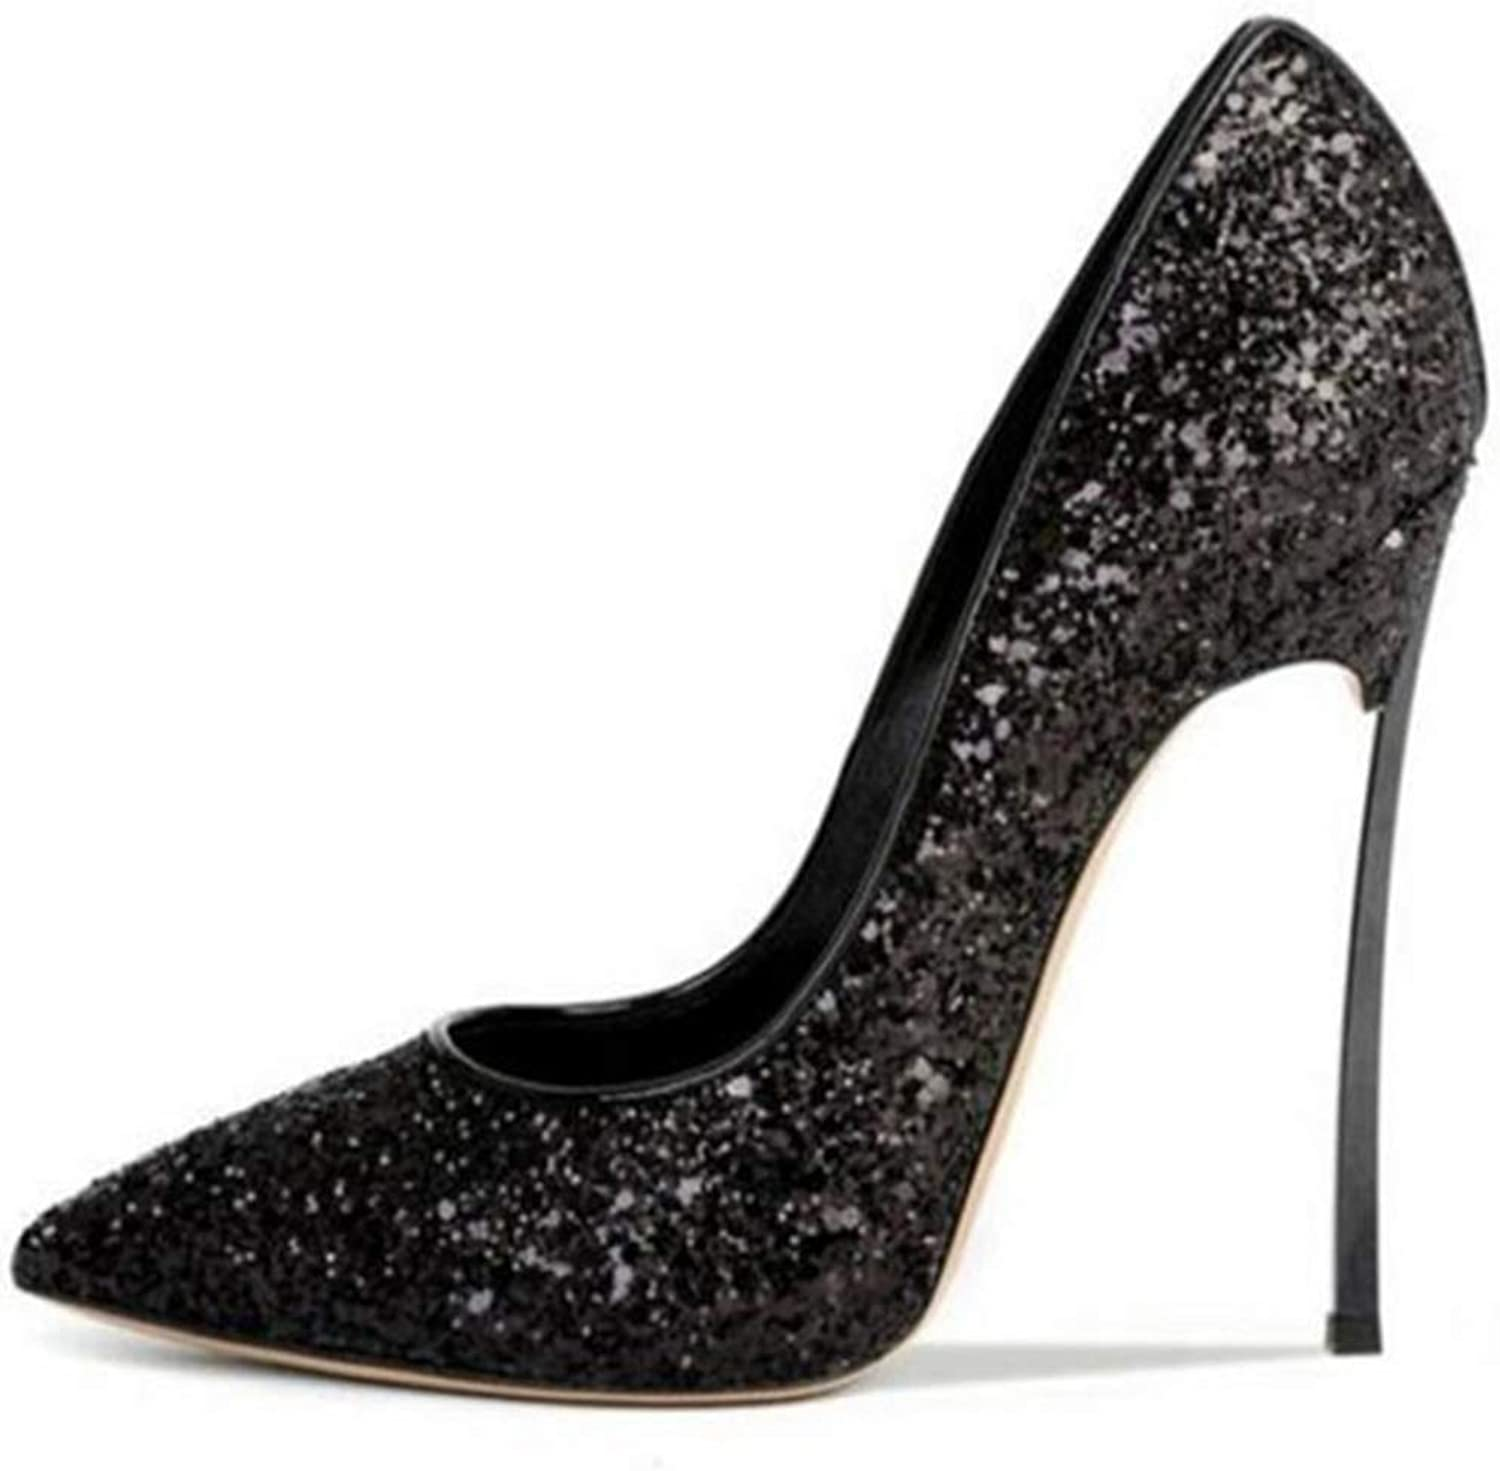 XDLEX Women's Sexy Glitter Sequins Pumps Stiletto Pointed Toe Slip on Bling Bridal shoes High Heel Low Cut Sparkly Party Dress D'Orsay Wedding Heeded shoes